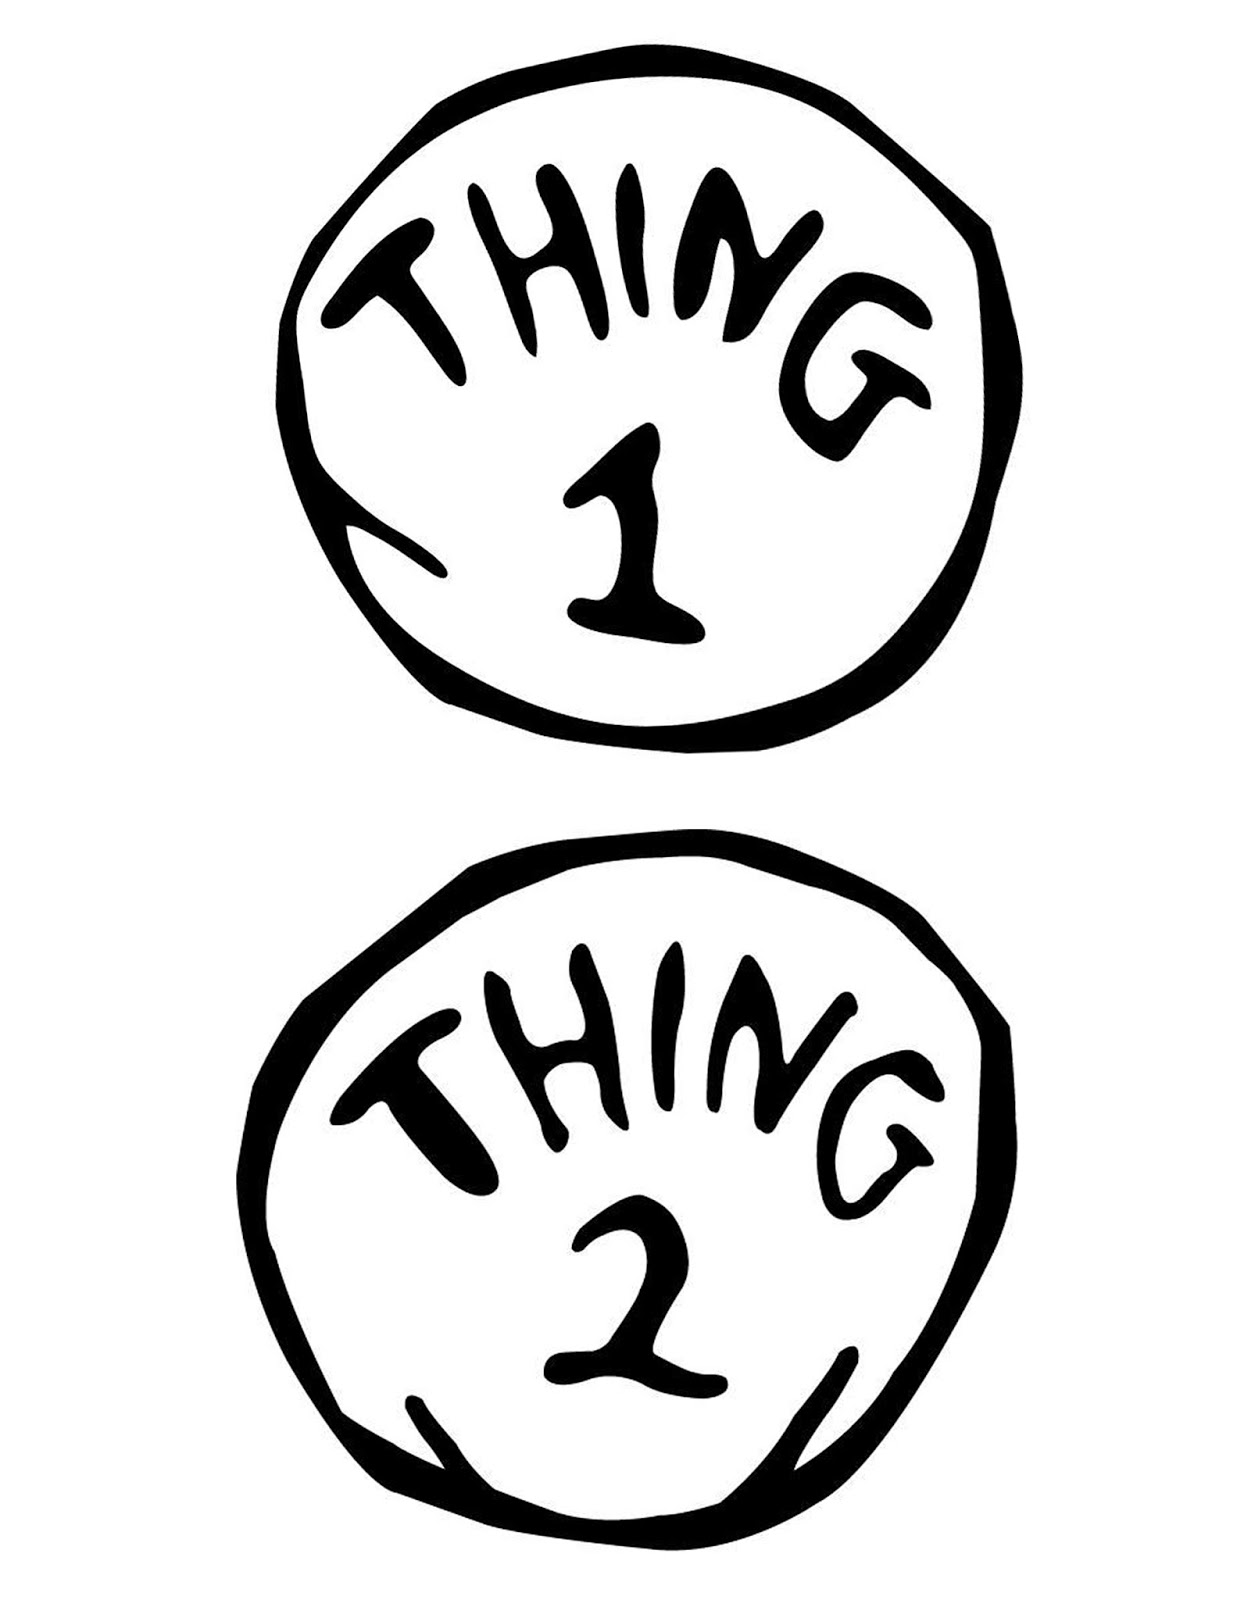 thing 1 and thing 2 coloring pages thing 1 and thing 2 coloring pages to print at 2 1 thing coloring thing and pages